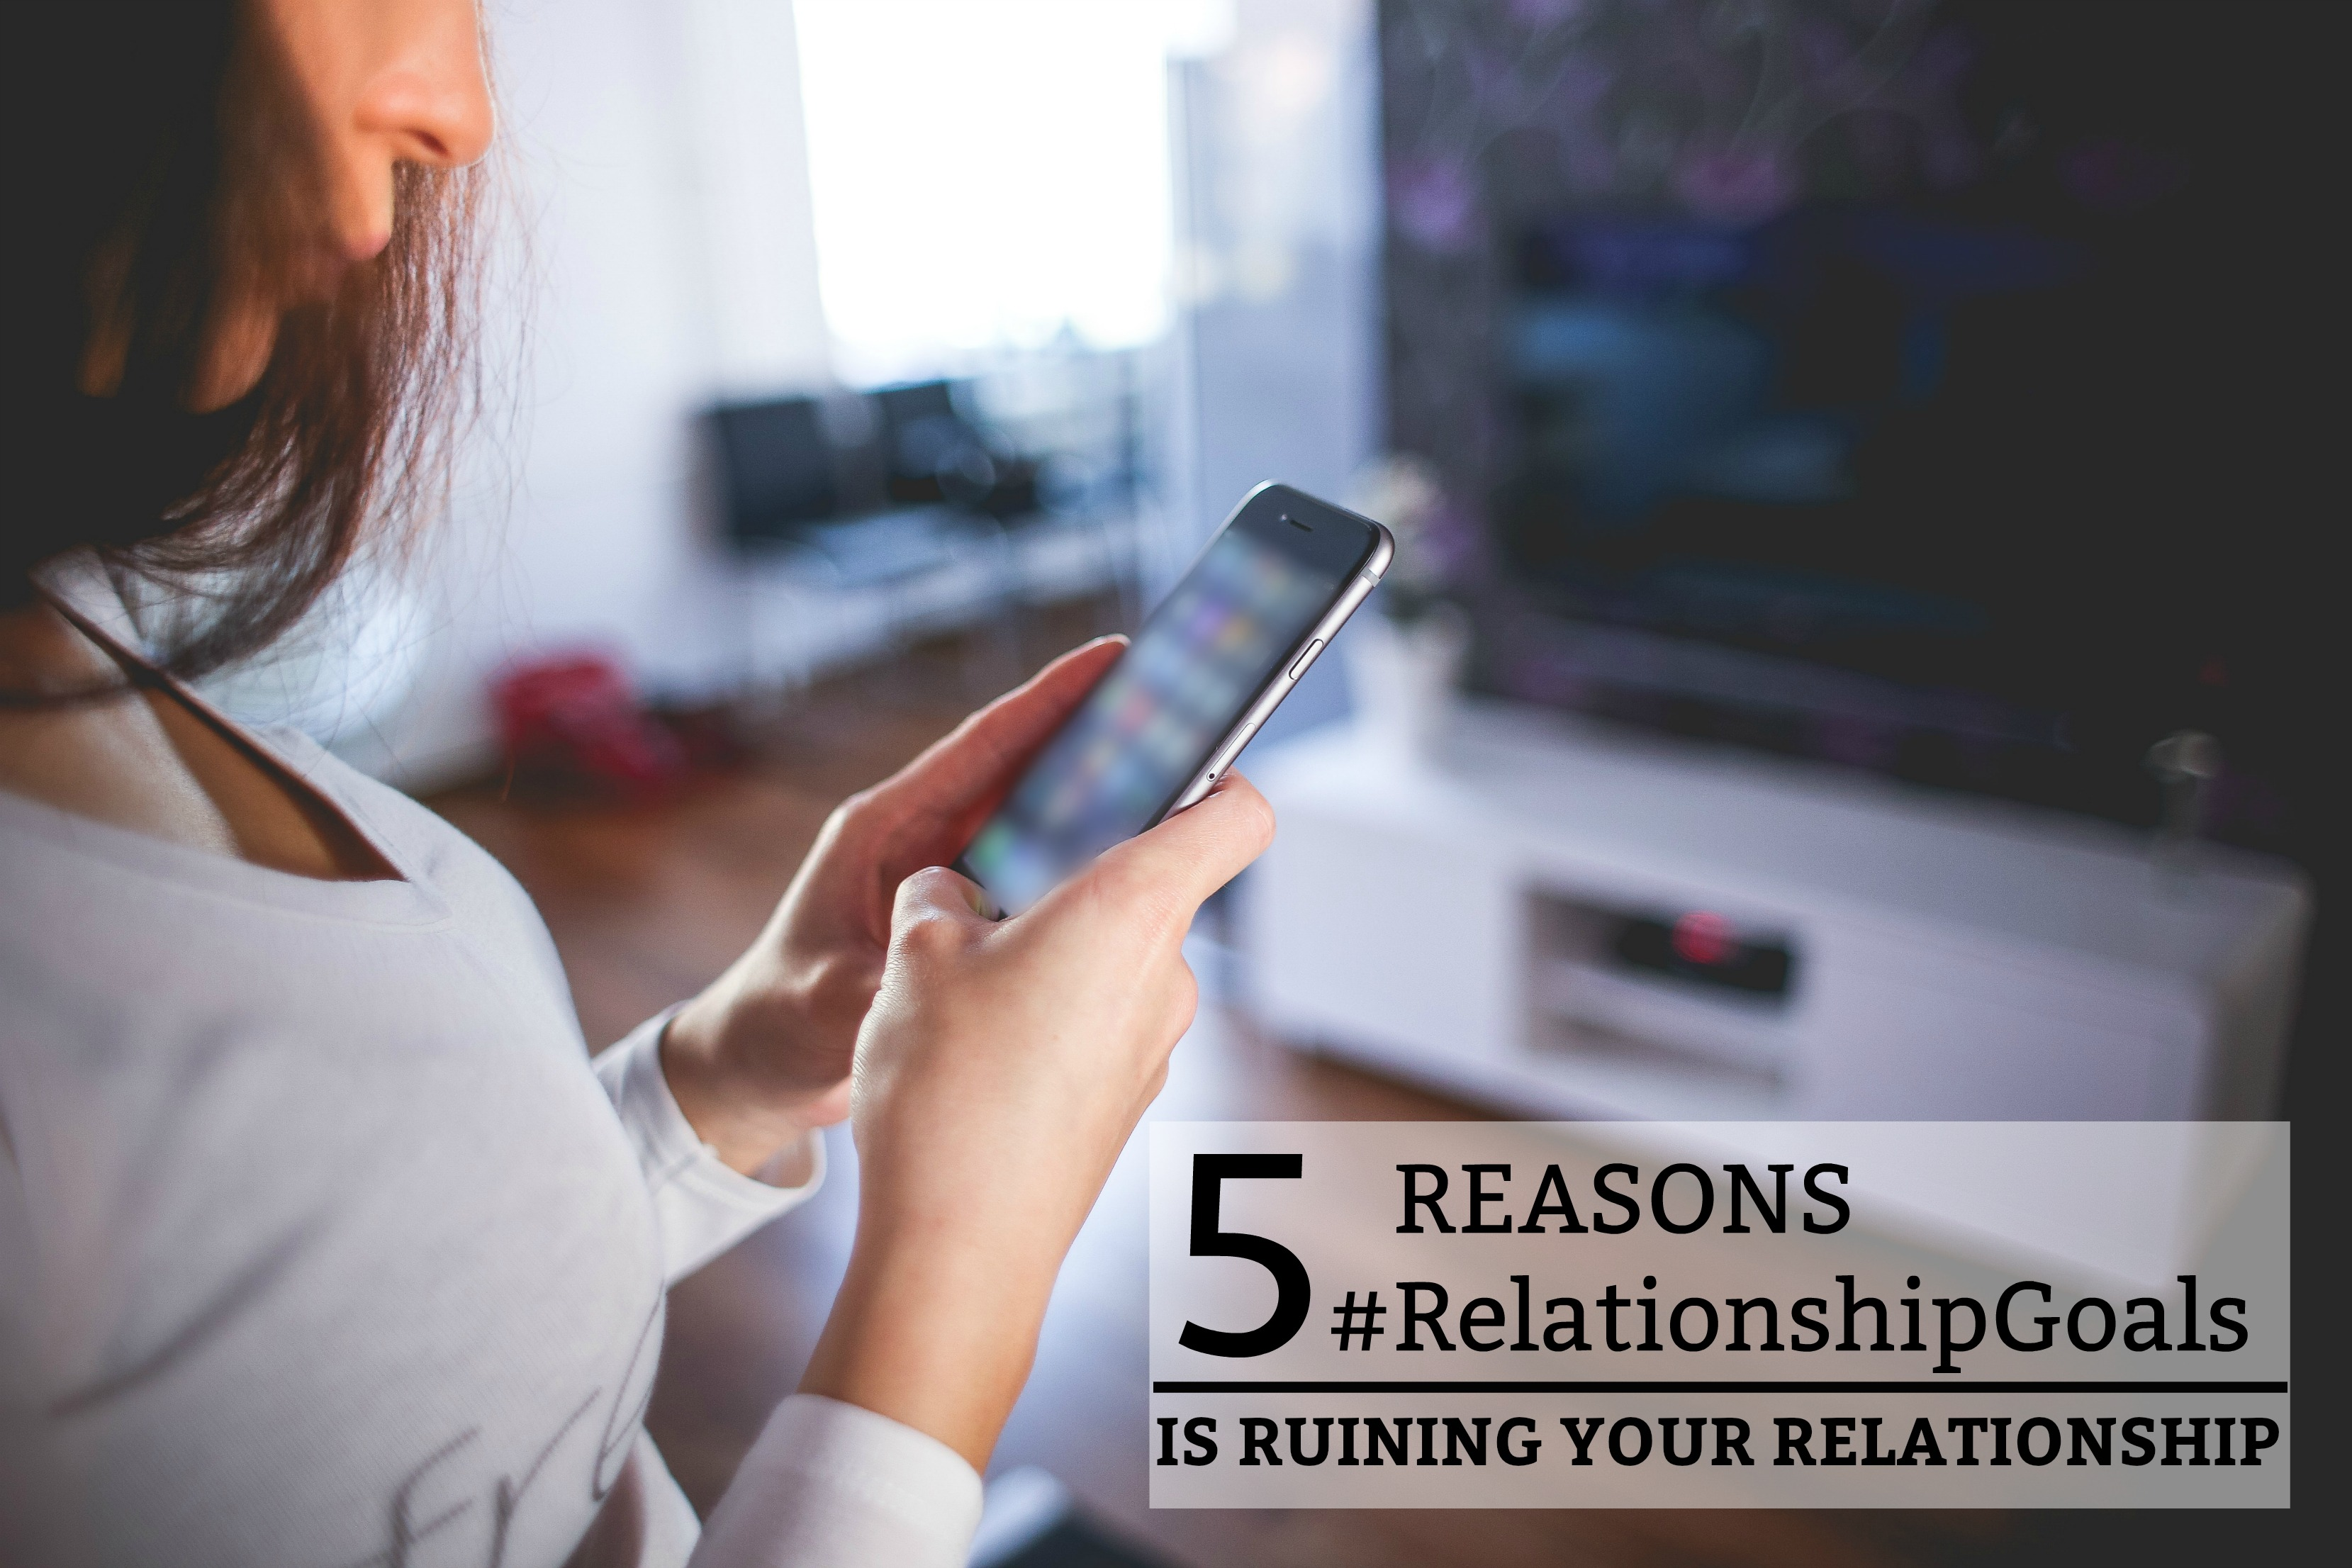 5 Reasons #RelationshipGoals Is Ruining Your Relationship - a practical guide on not letting the comparison trap ruin your relationship. www.tradingaverage.com